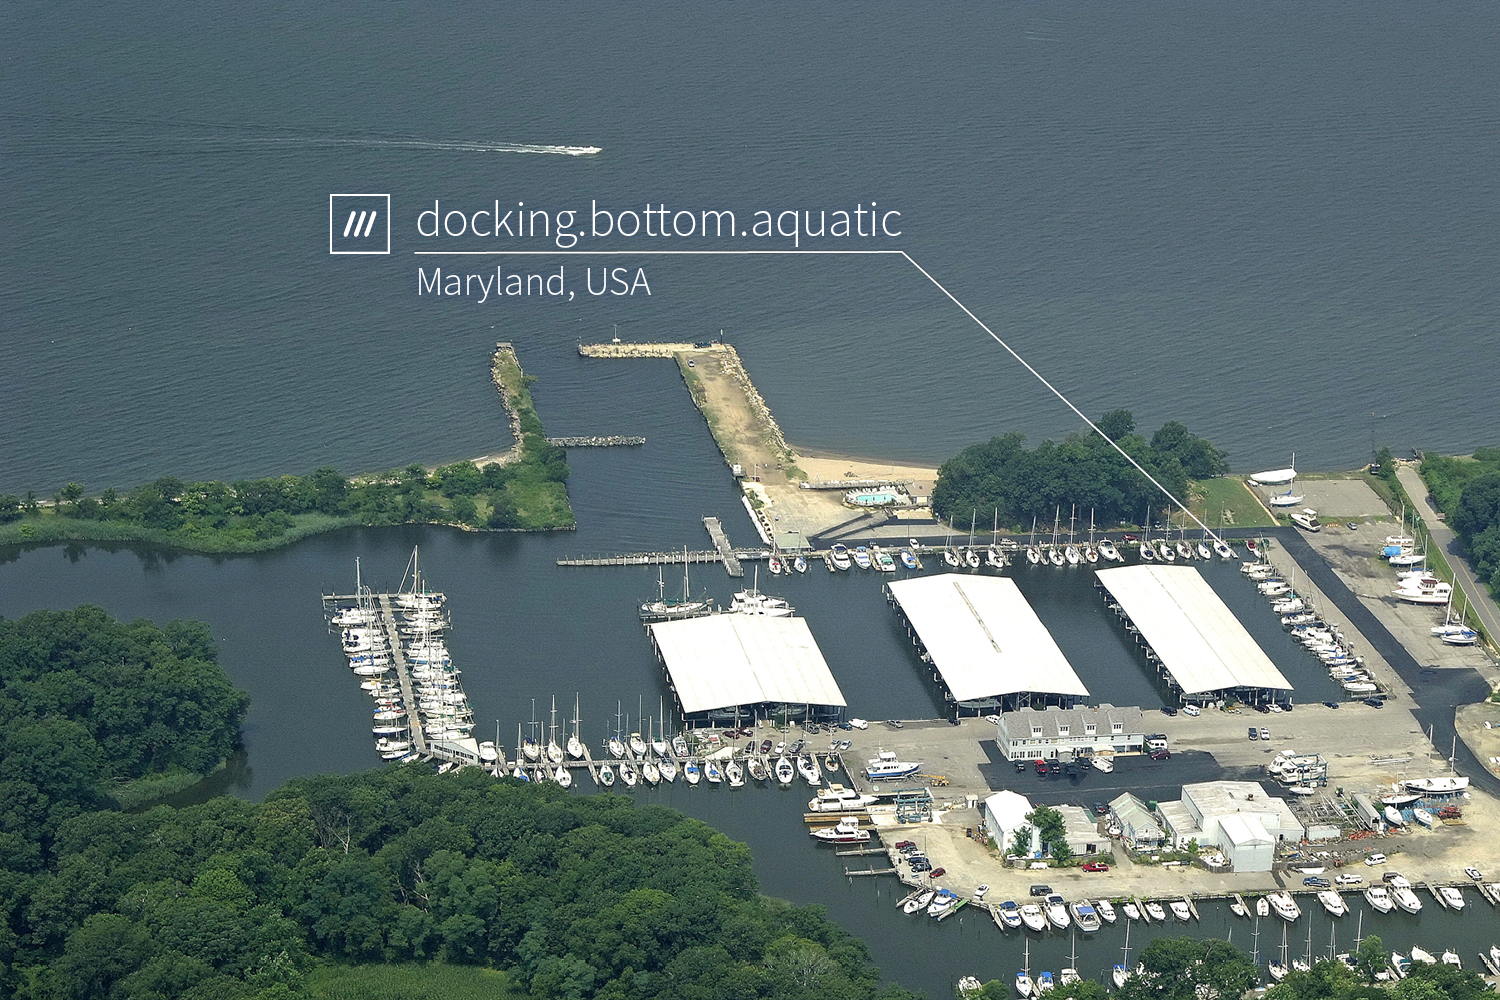 boats docked at a port at 3 word address docking.bottom.aquatic